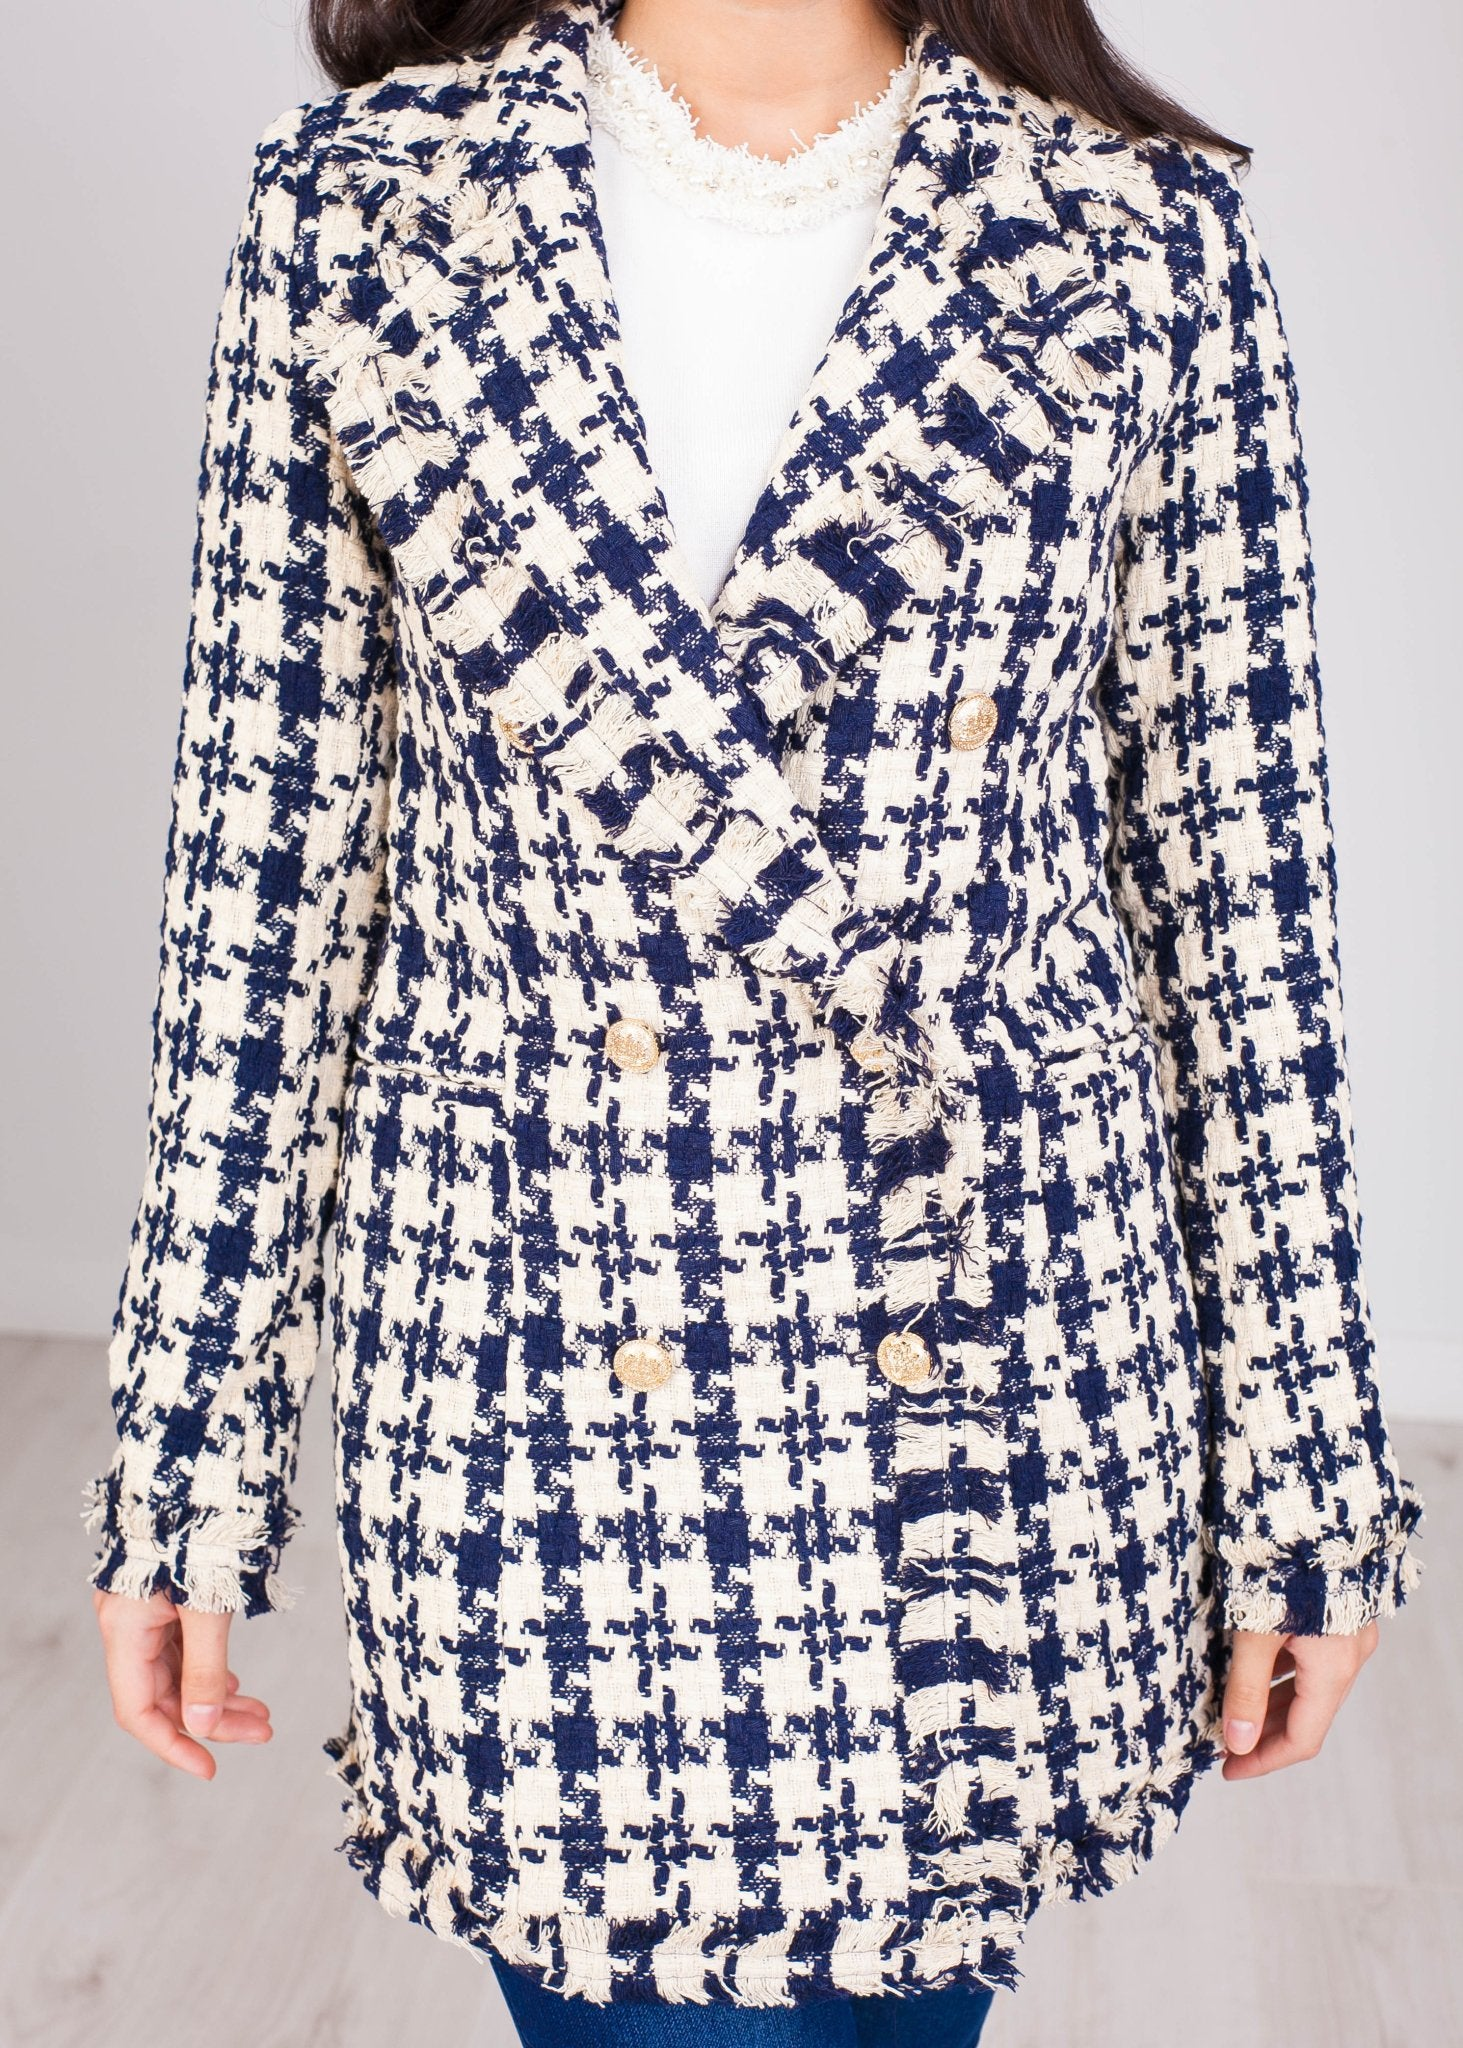 Arabella Navy and Cream Longline Blazer - The Walk in Wardrobe